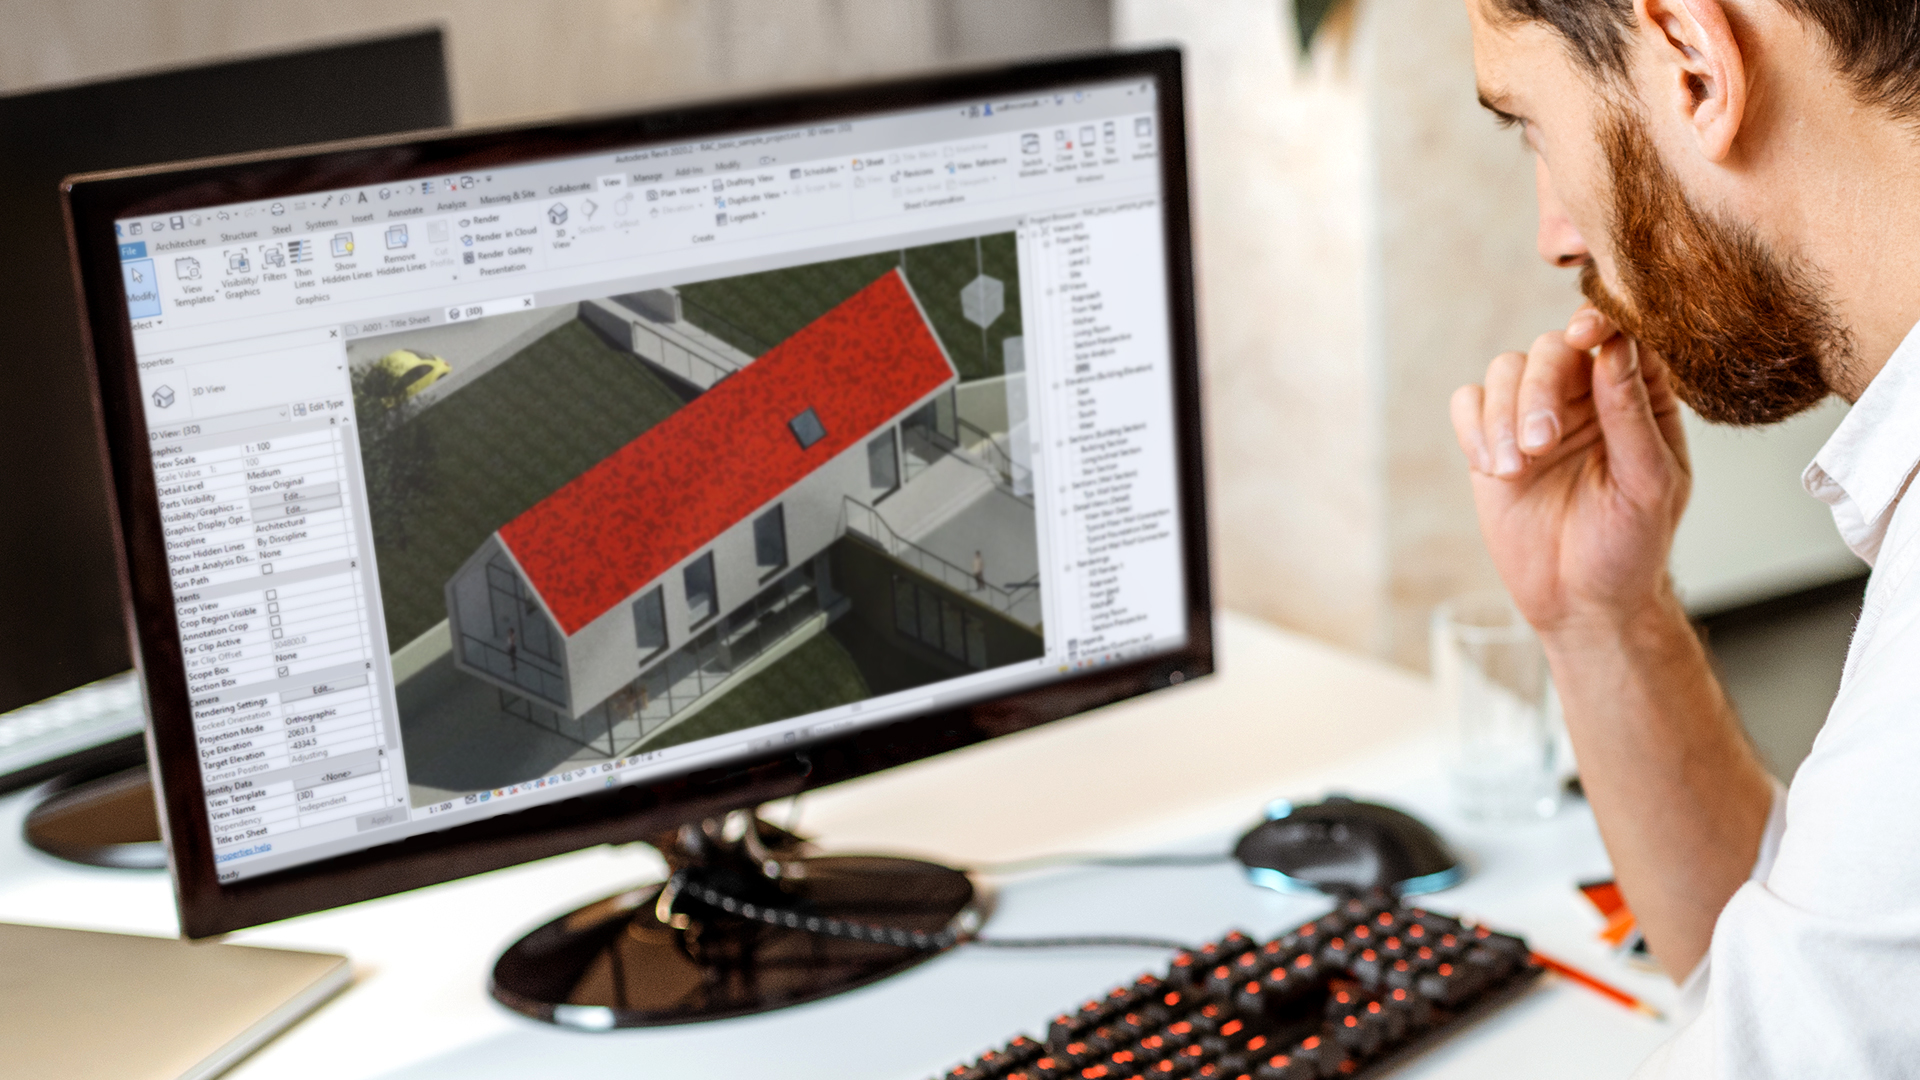 Optimizing your hardware for the Autodesk applications: Hardware Construction for AutoCAD, Revit, and Inventor